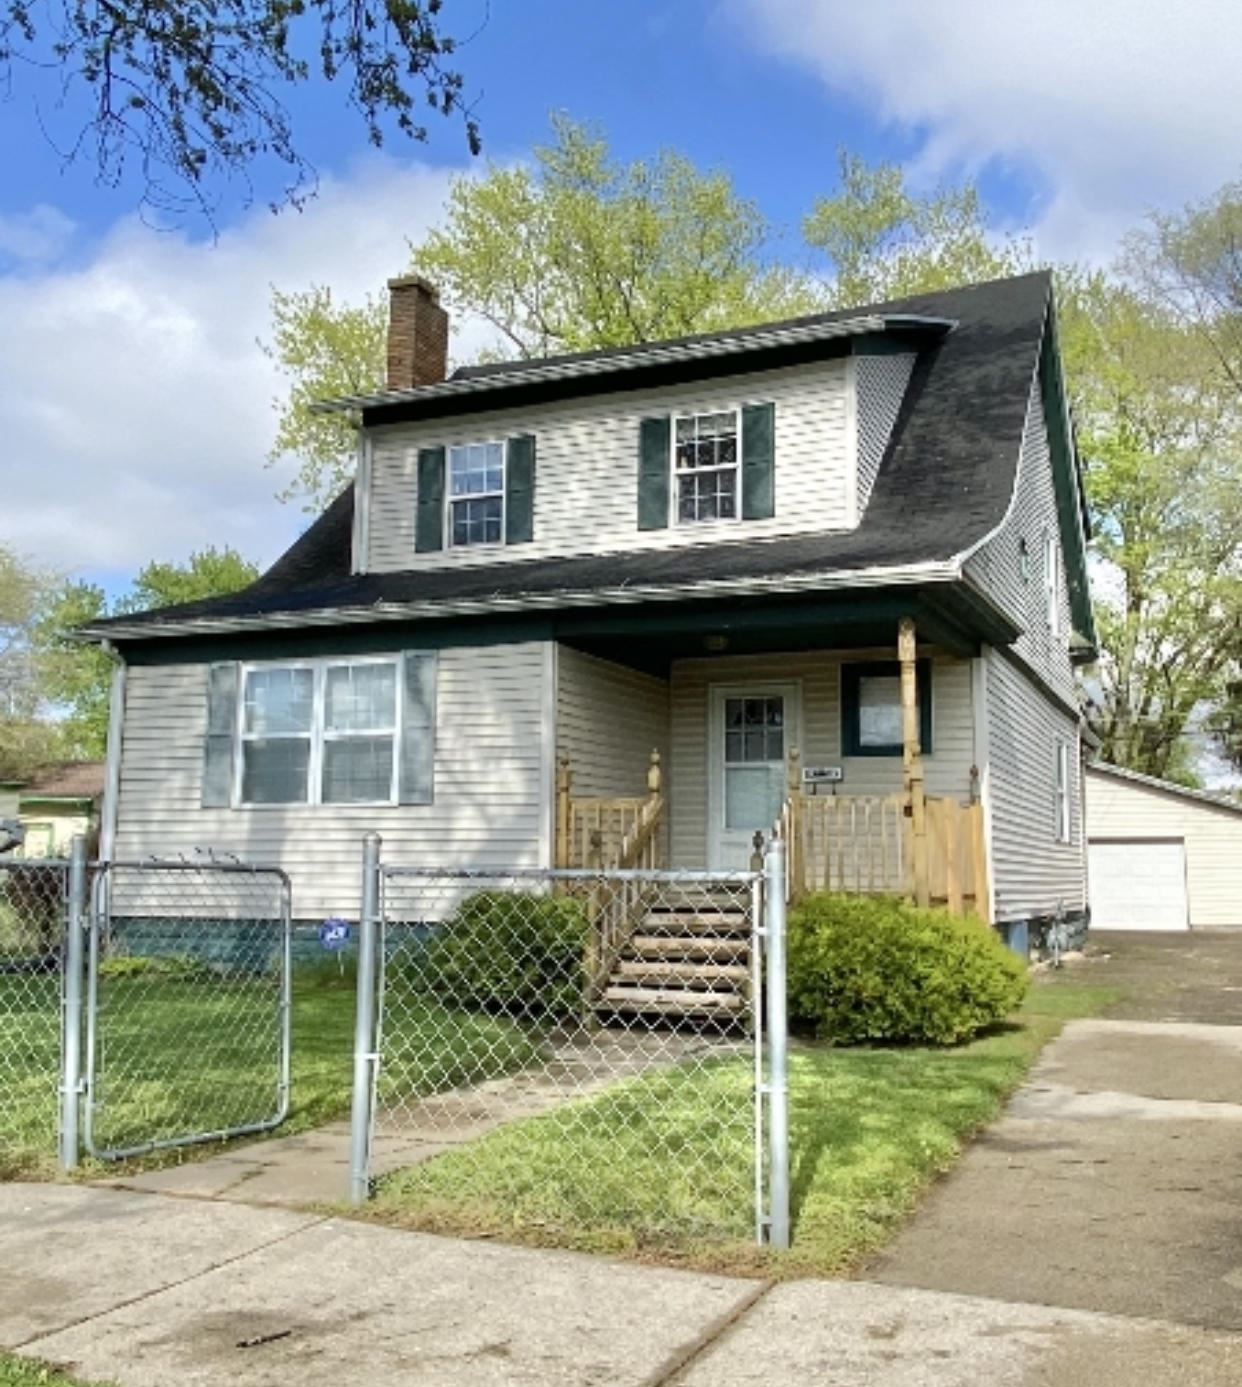 777 Colfax Avenue, Benton Harbor, MI 49022 - MLS#: 21015910